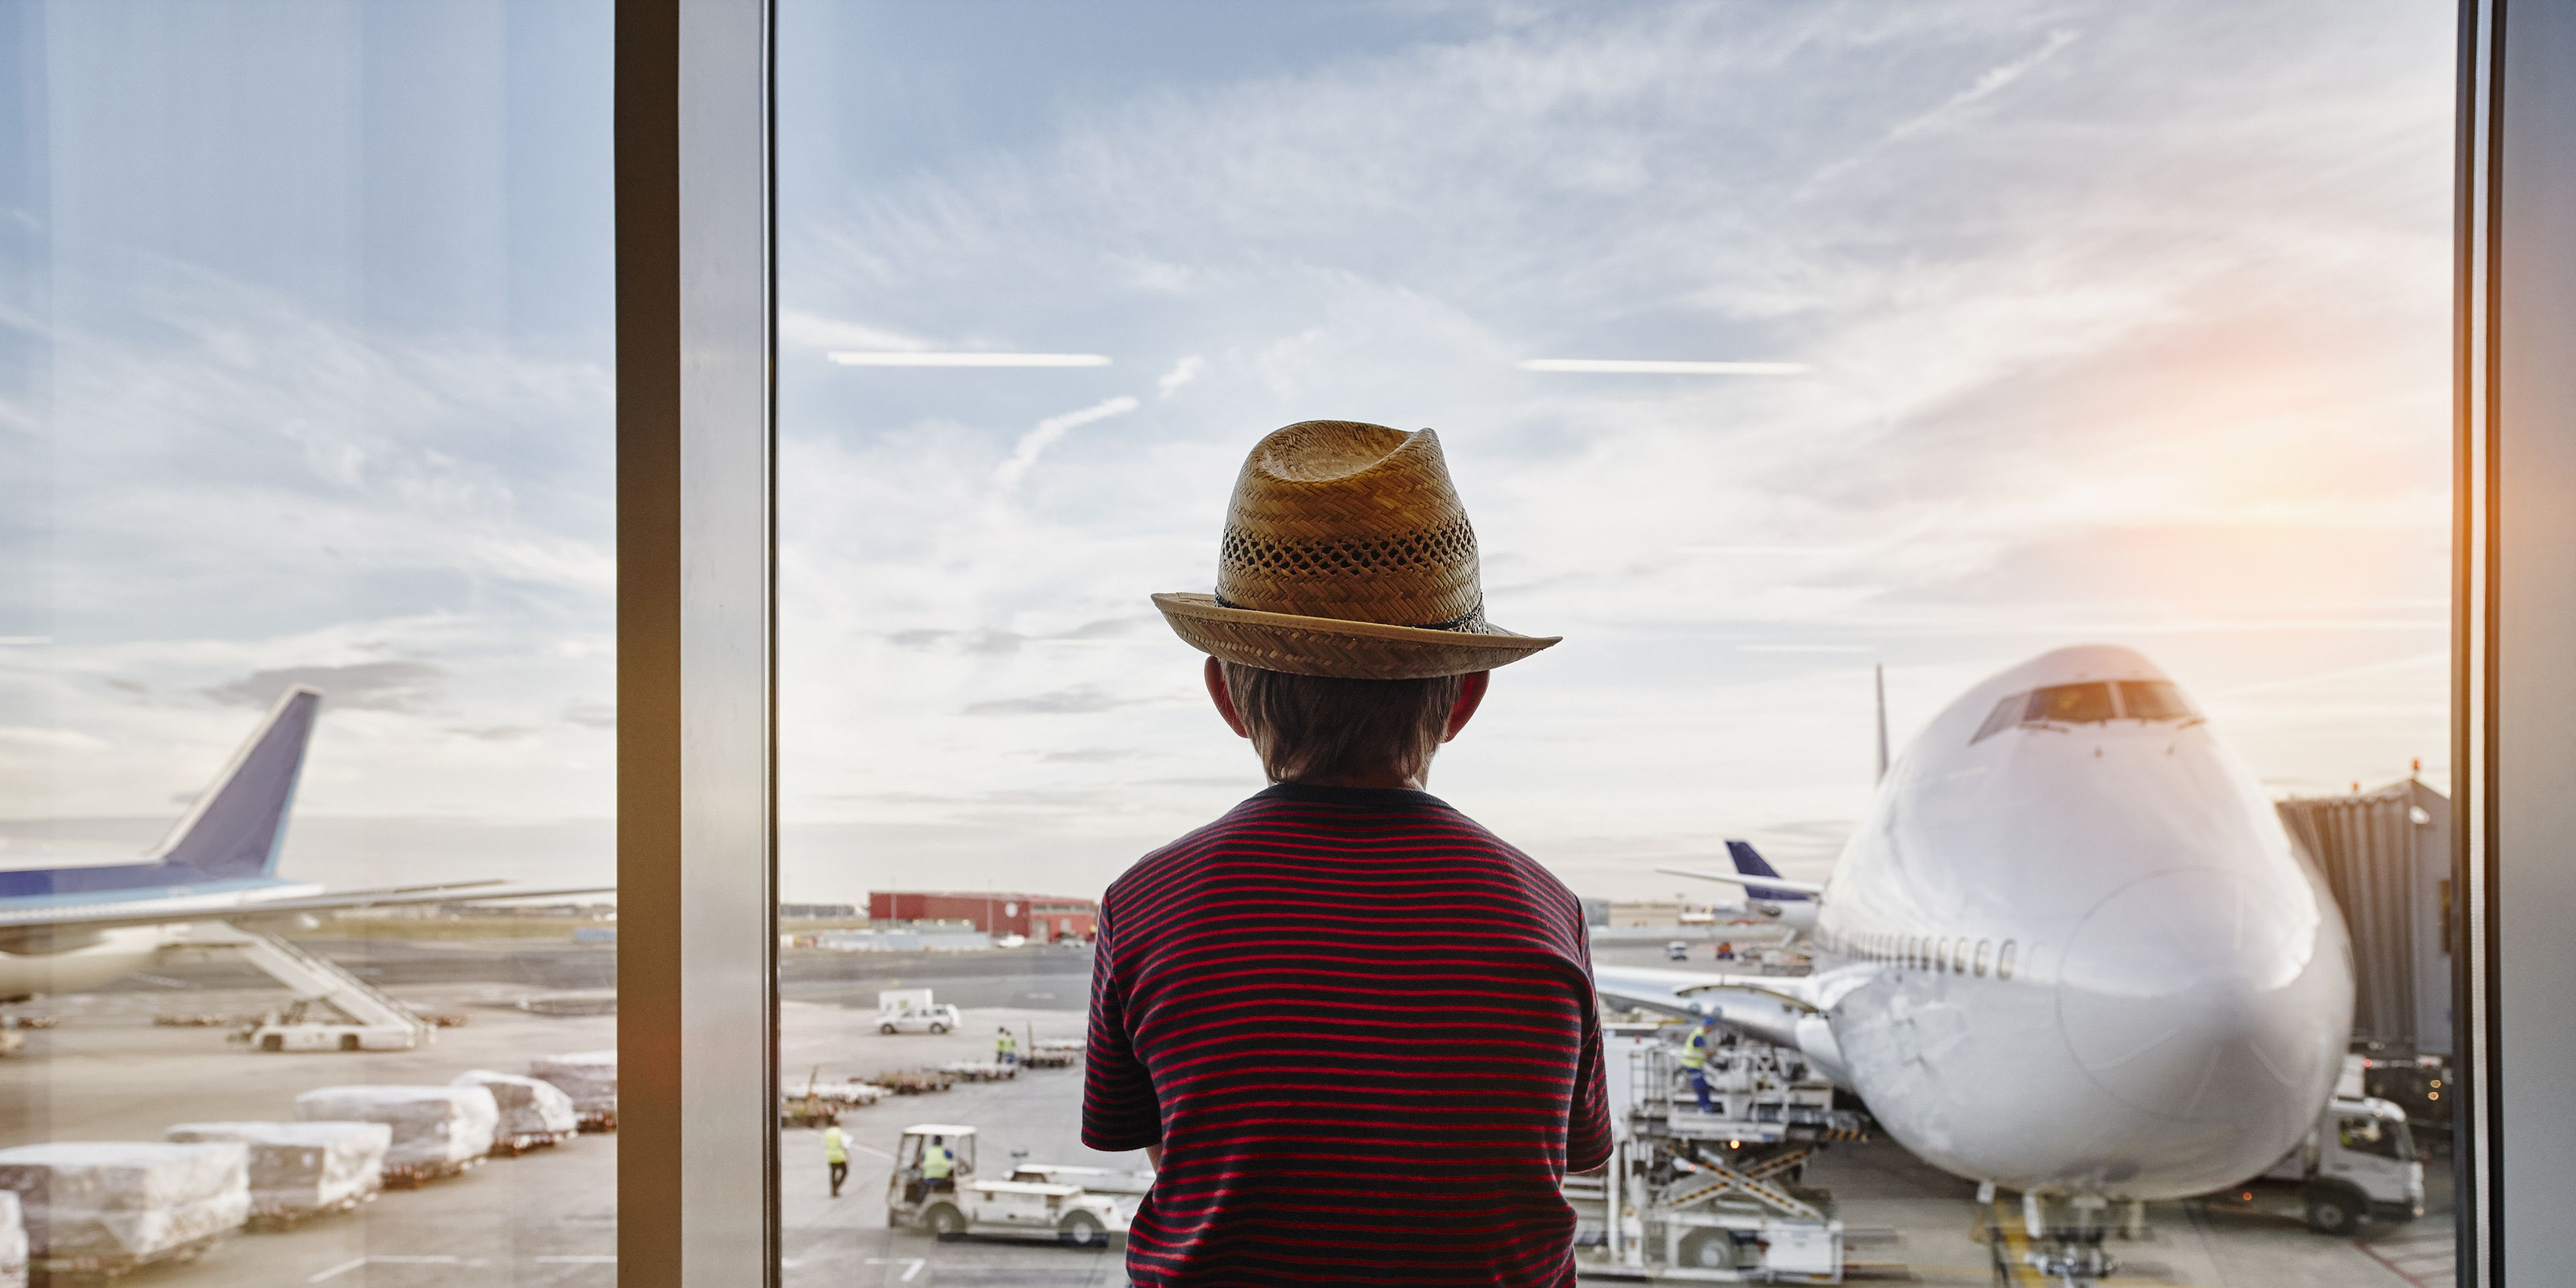 Boy wearing straw hat looking through window to airplane on the apron